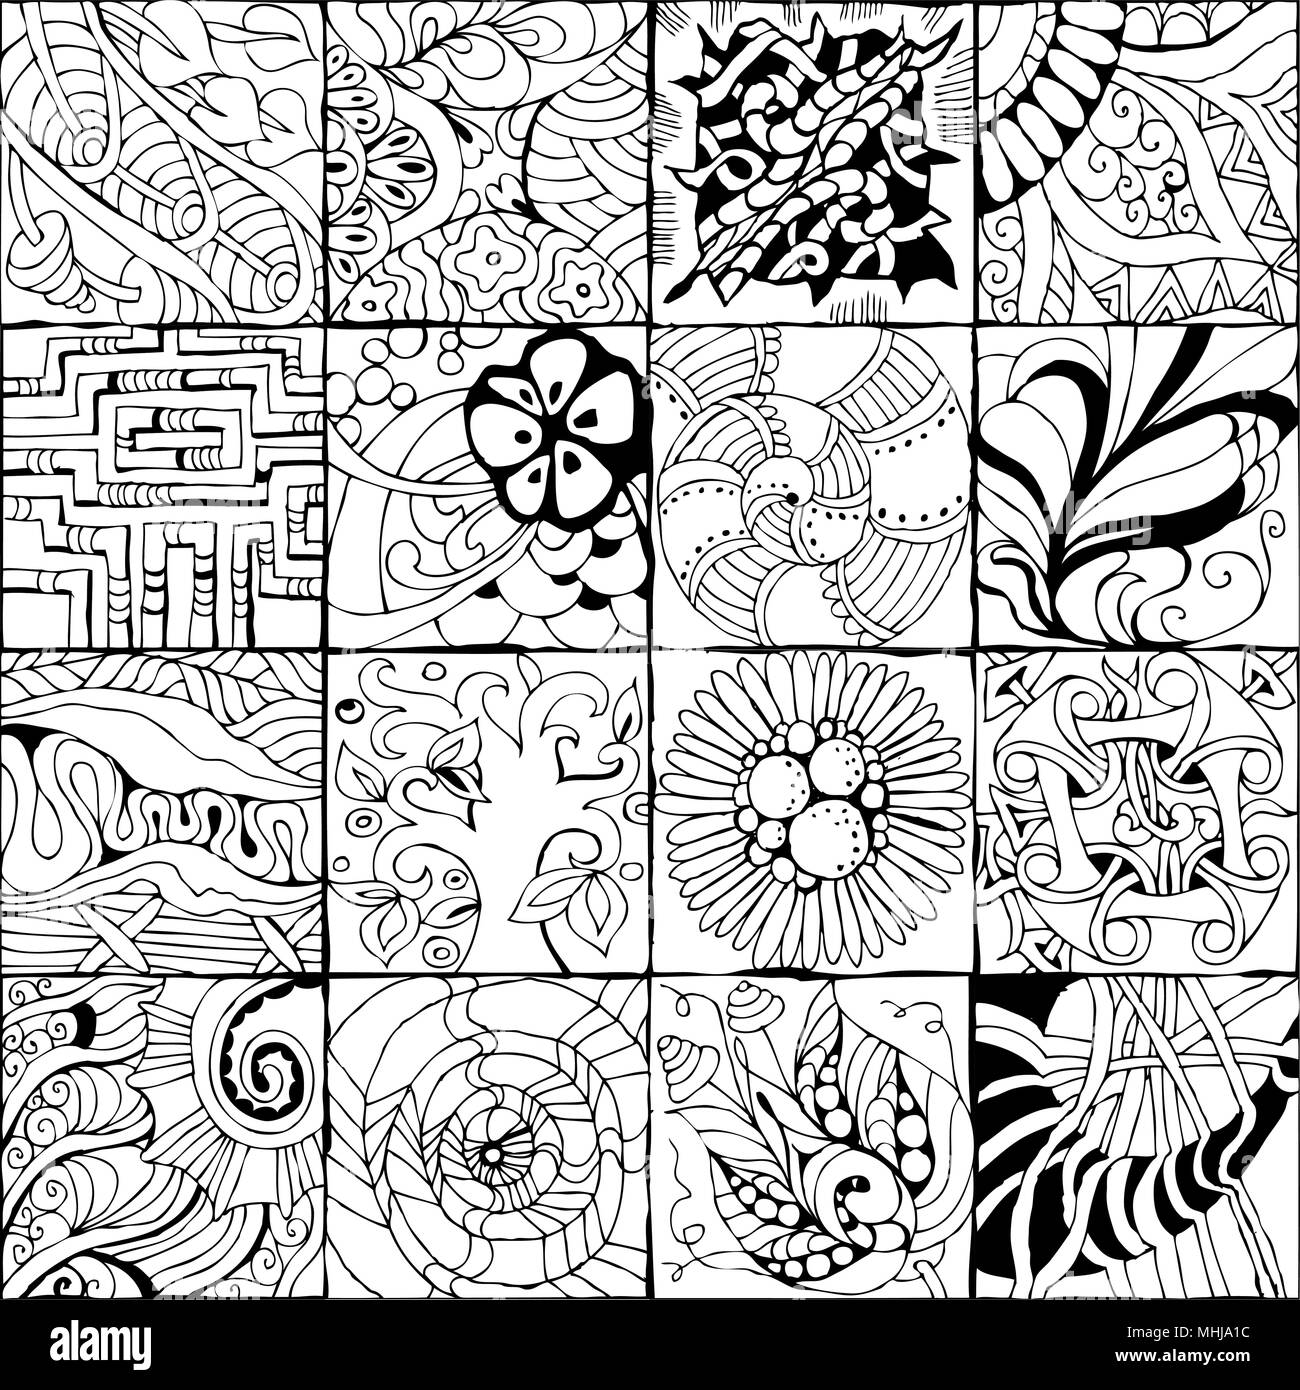 Vector Adult Coloring Book Textures Various Patterns 16 Pieces